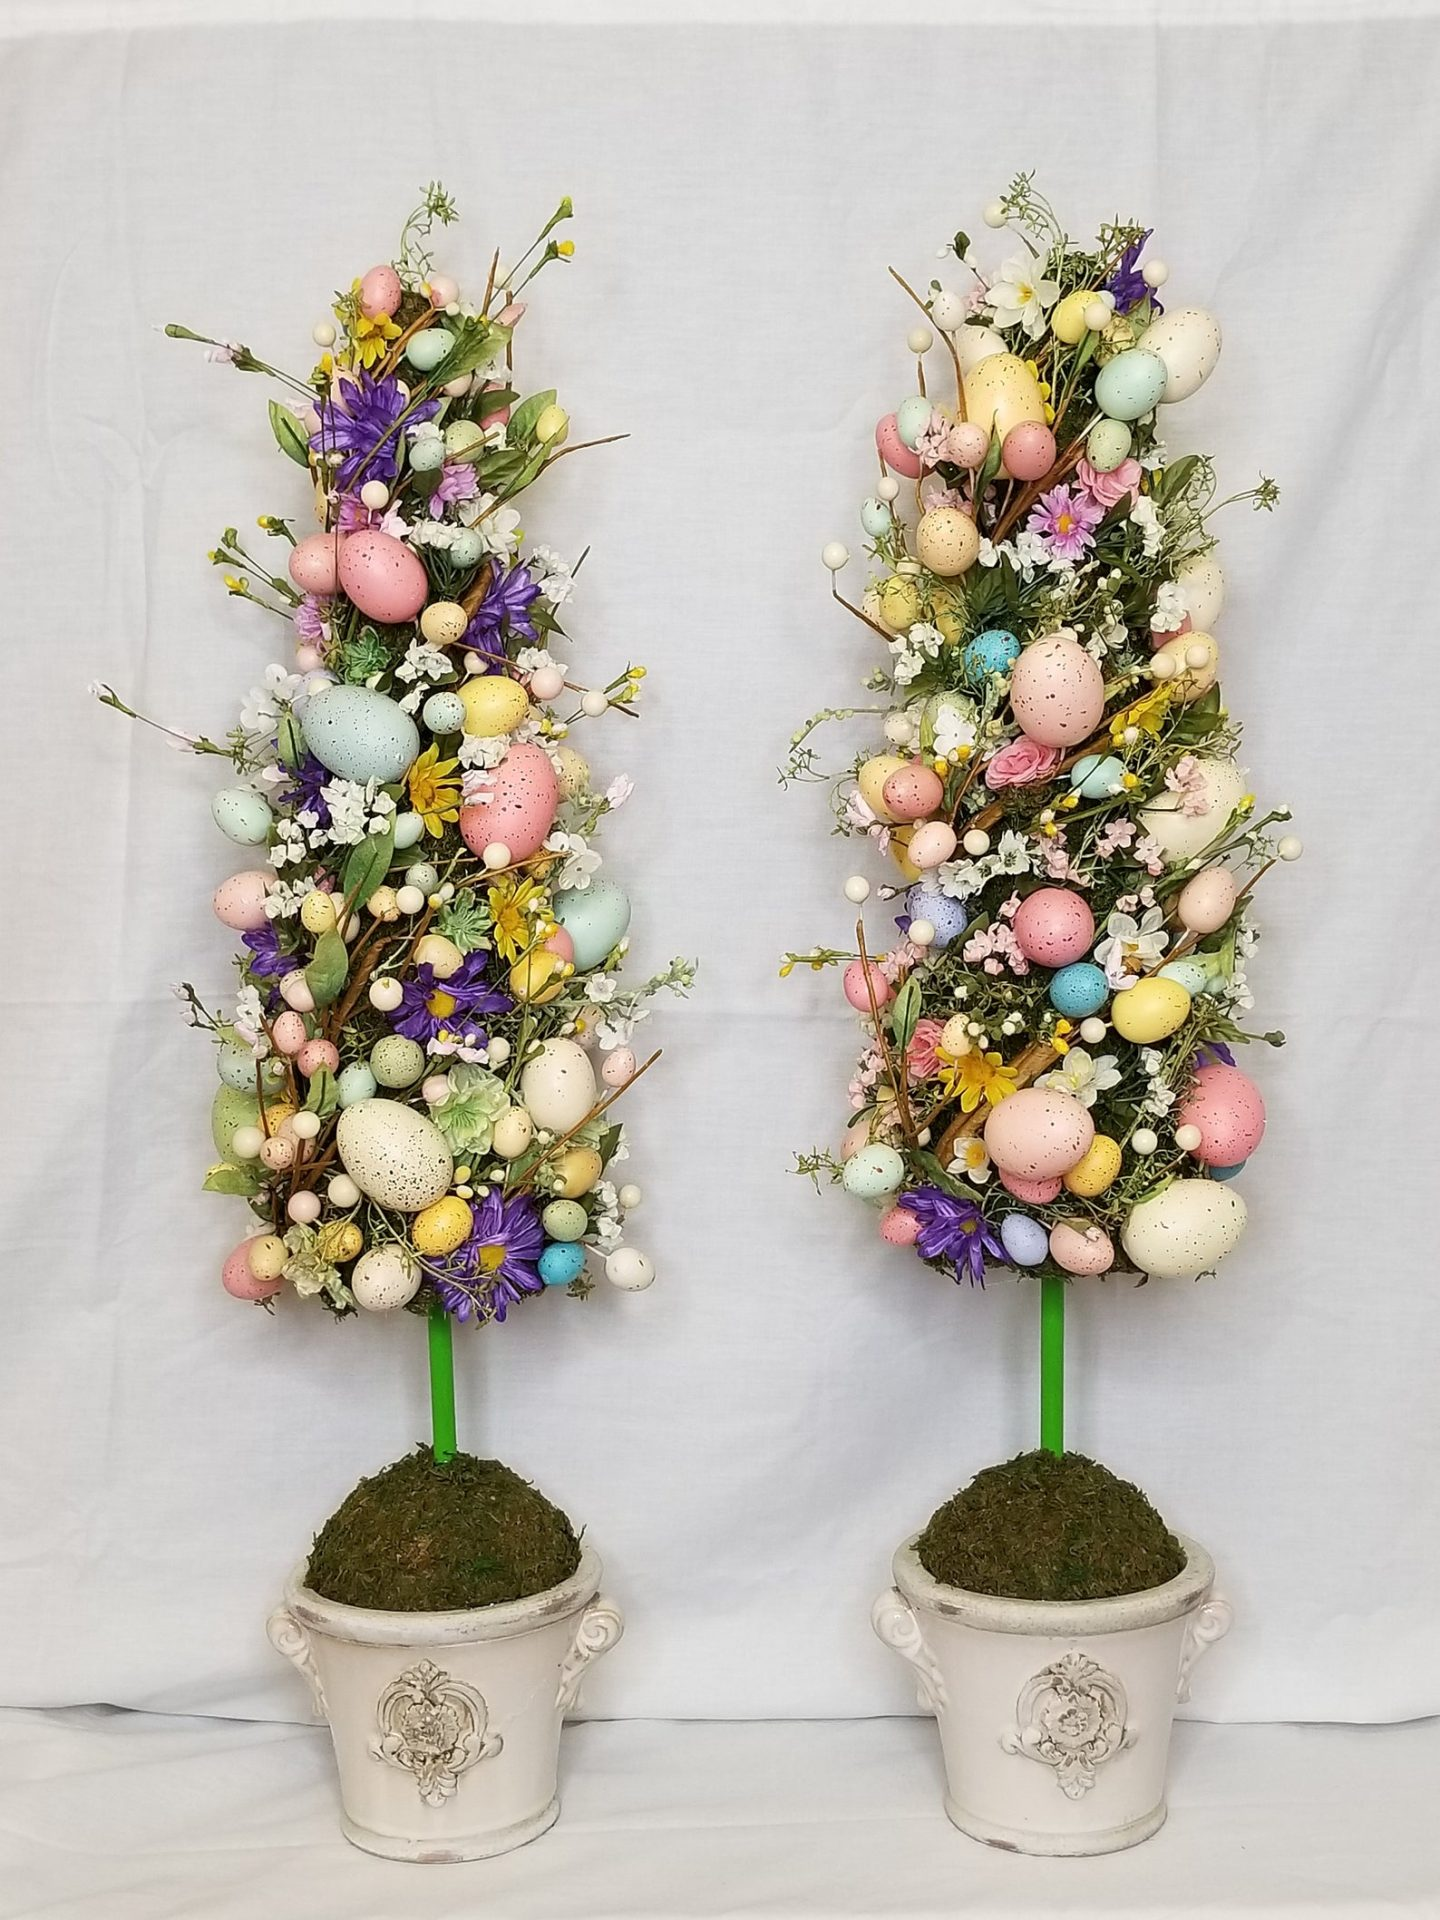 Pastel Easter tree topiary ideas with eggs